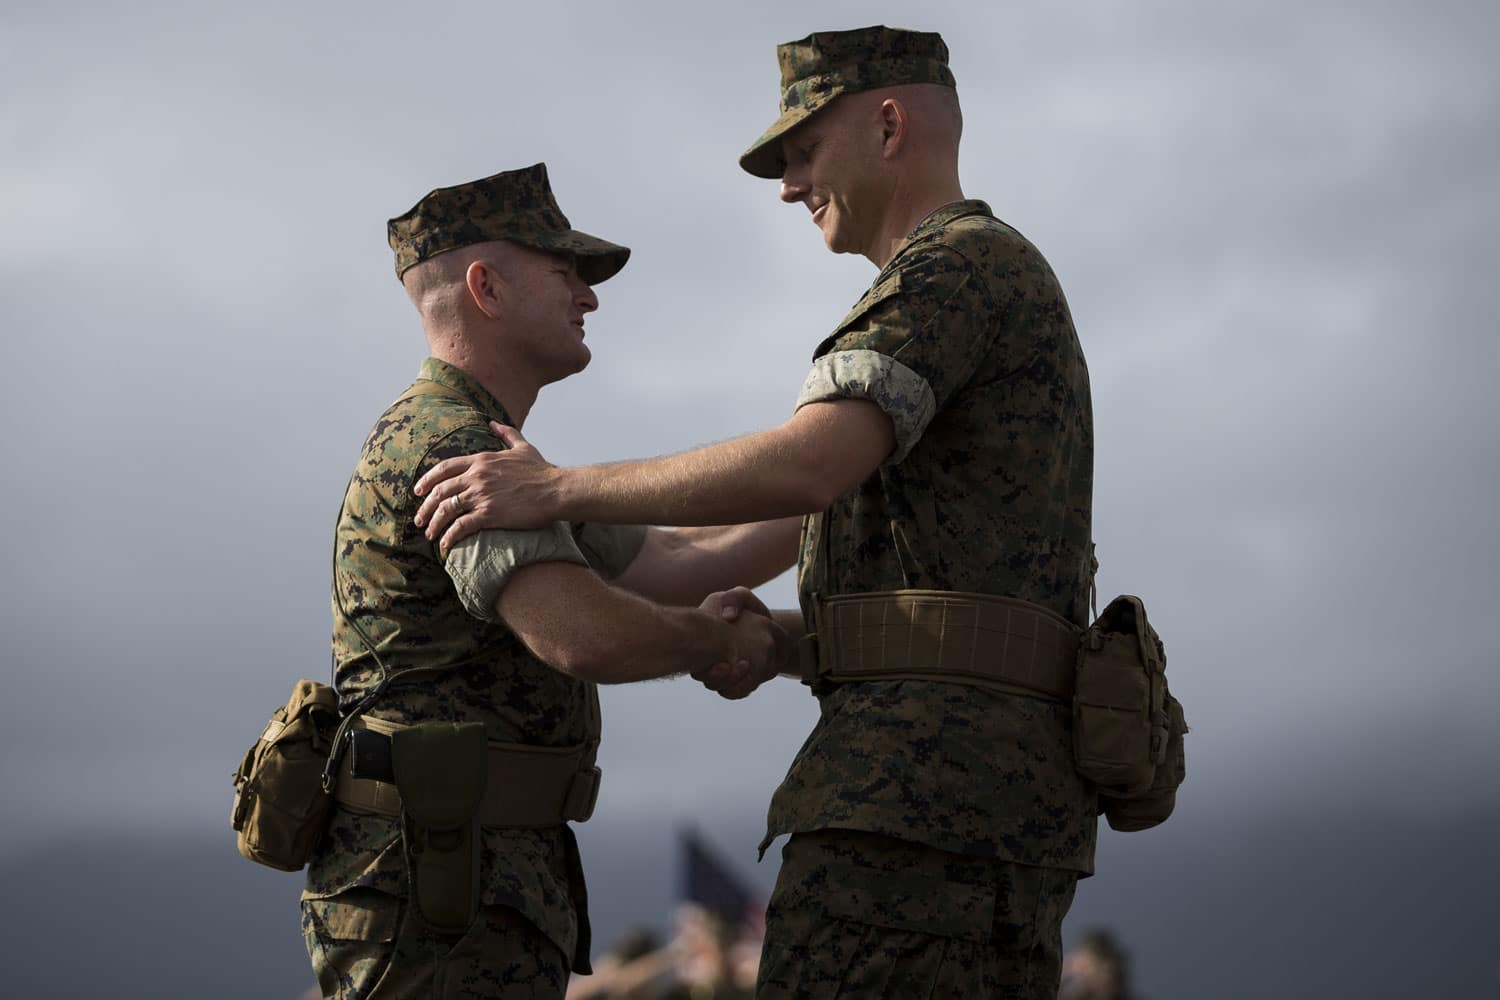 U.S. Marine Corps Lt. Col. Eric D. Purcell, off-going commanding officer, Marine Heavy Helicopter Squadron 463, and U.S. Marine Corps Lt. Col. Kevin G. Hunter, on-coming commanding officer, share a handshake.